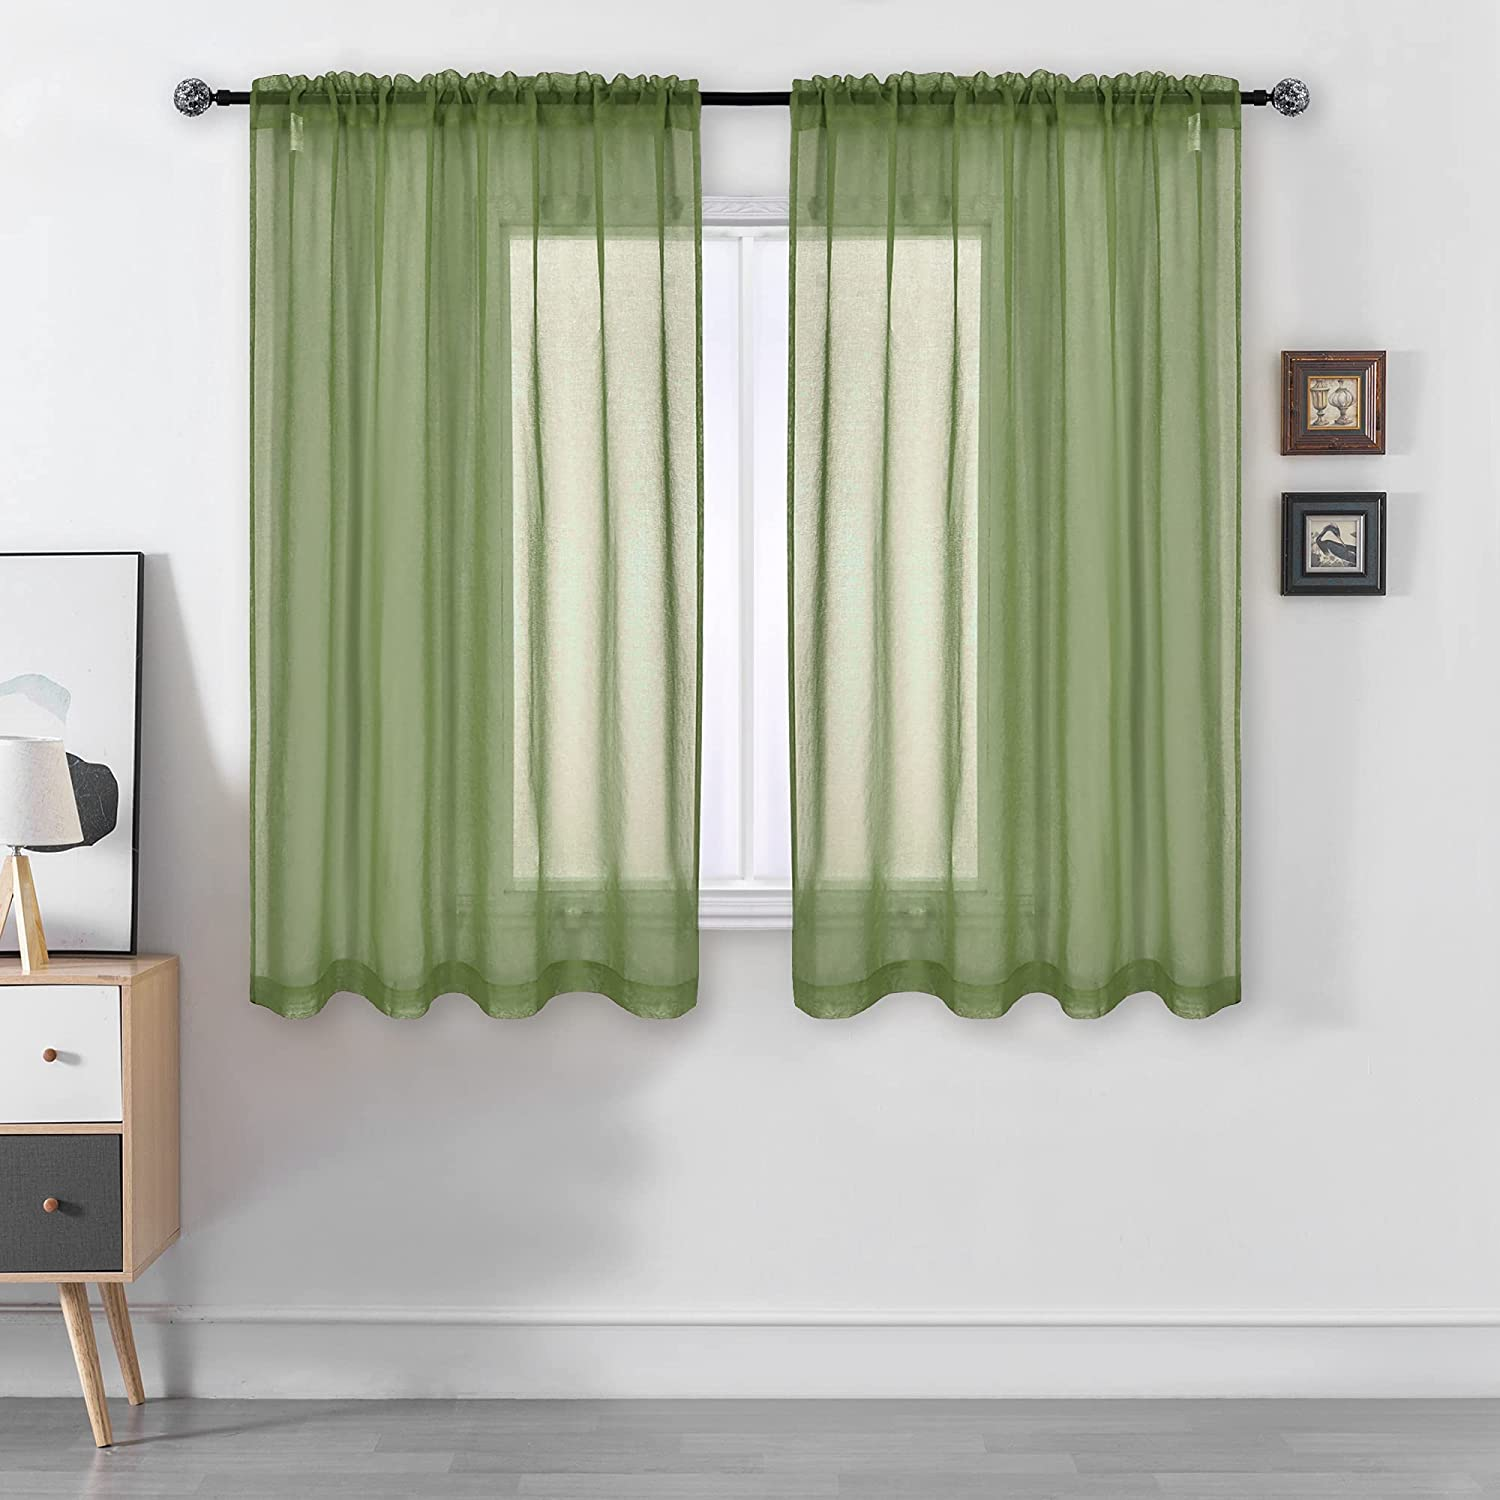 DUALIFE Sage Green Sheer Curtains 63 Inch Length,Faux Linen Semi Sheer Curtain Drapes for Living Room Bedroom Kids Room Bathroom Privacy Voile Window Treatment Panels,52 x 63 Inches,Sage Set of 2